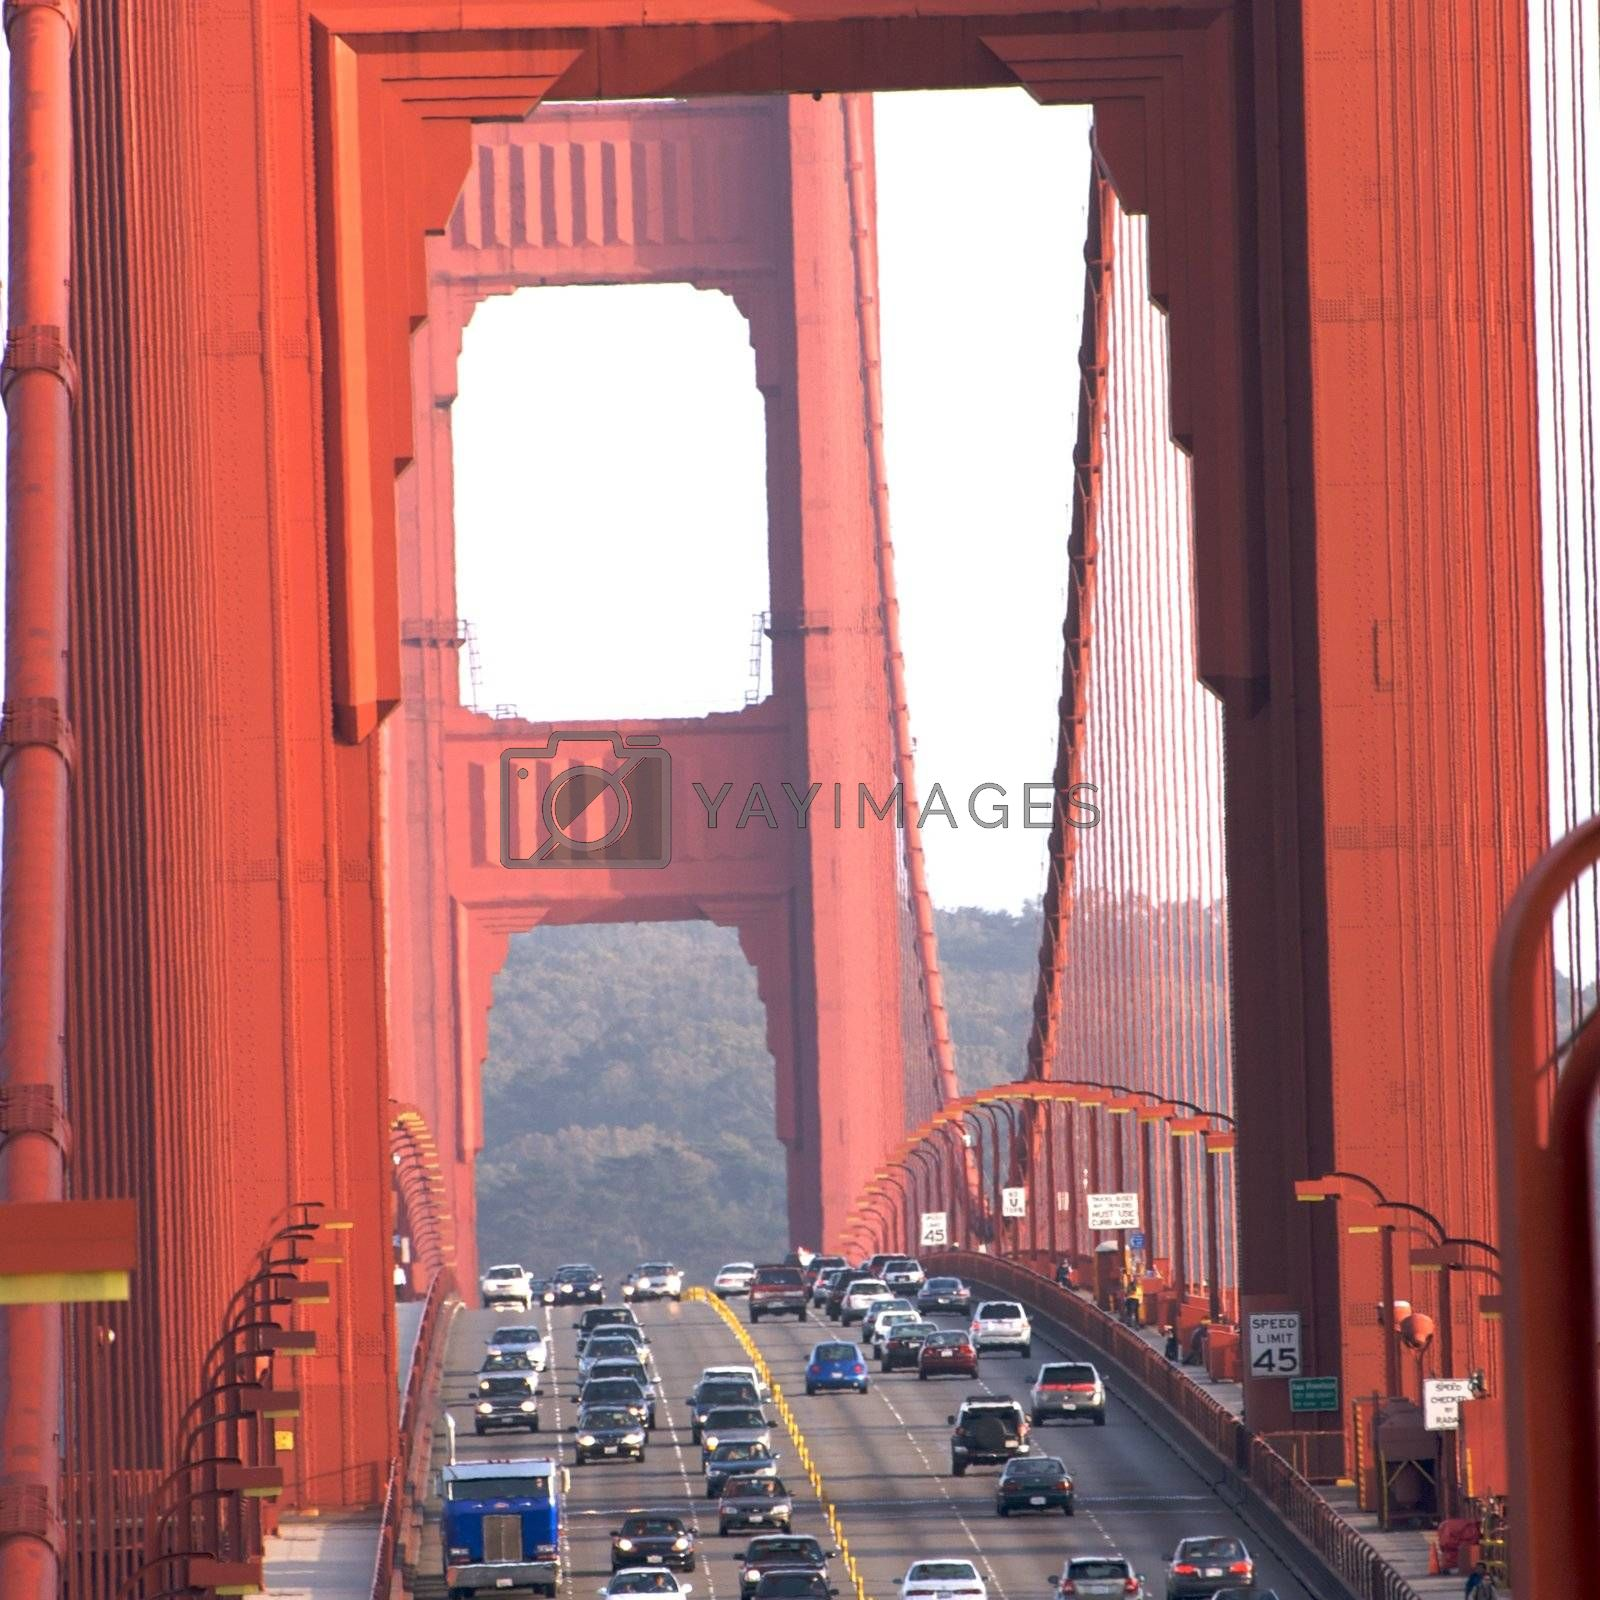 California, San Francisco, Golden Gate Bridge